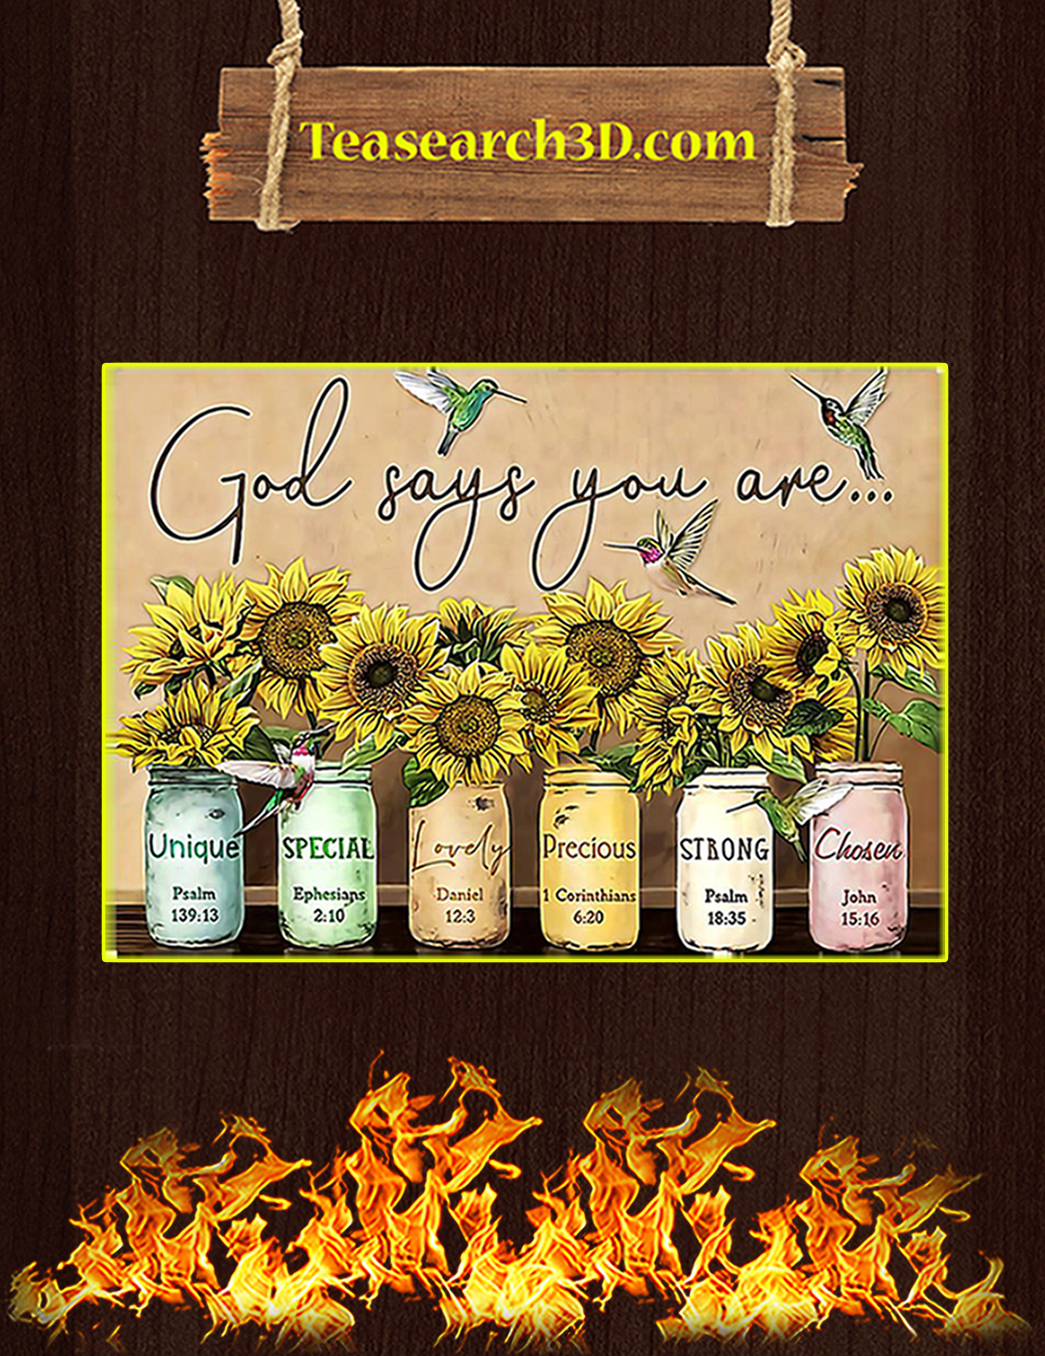 Sunflower God says you are poster A1